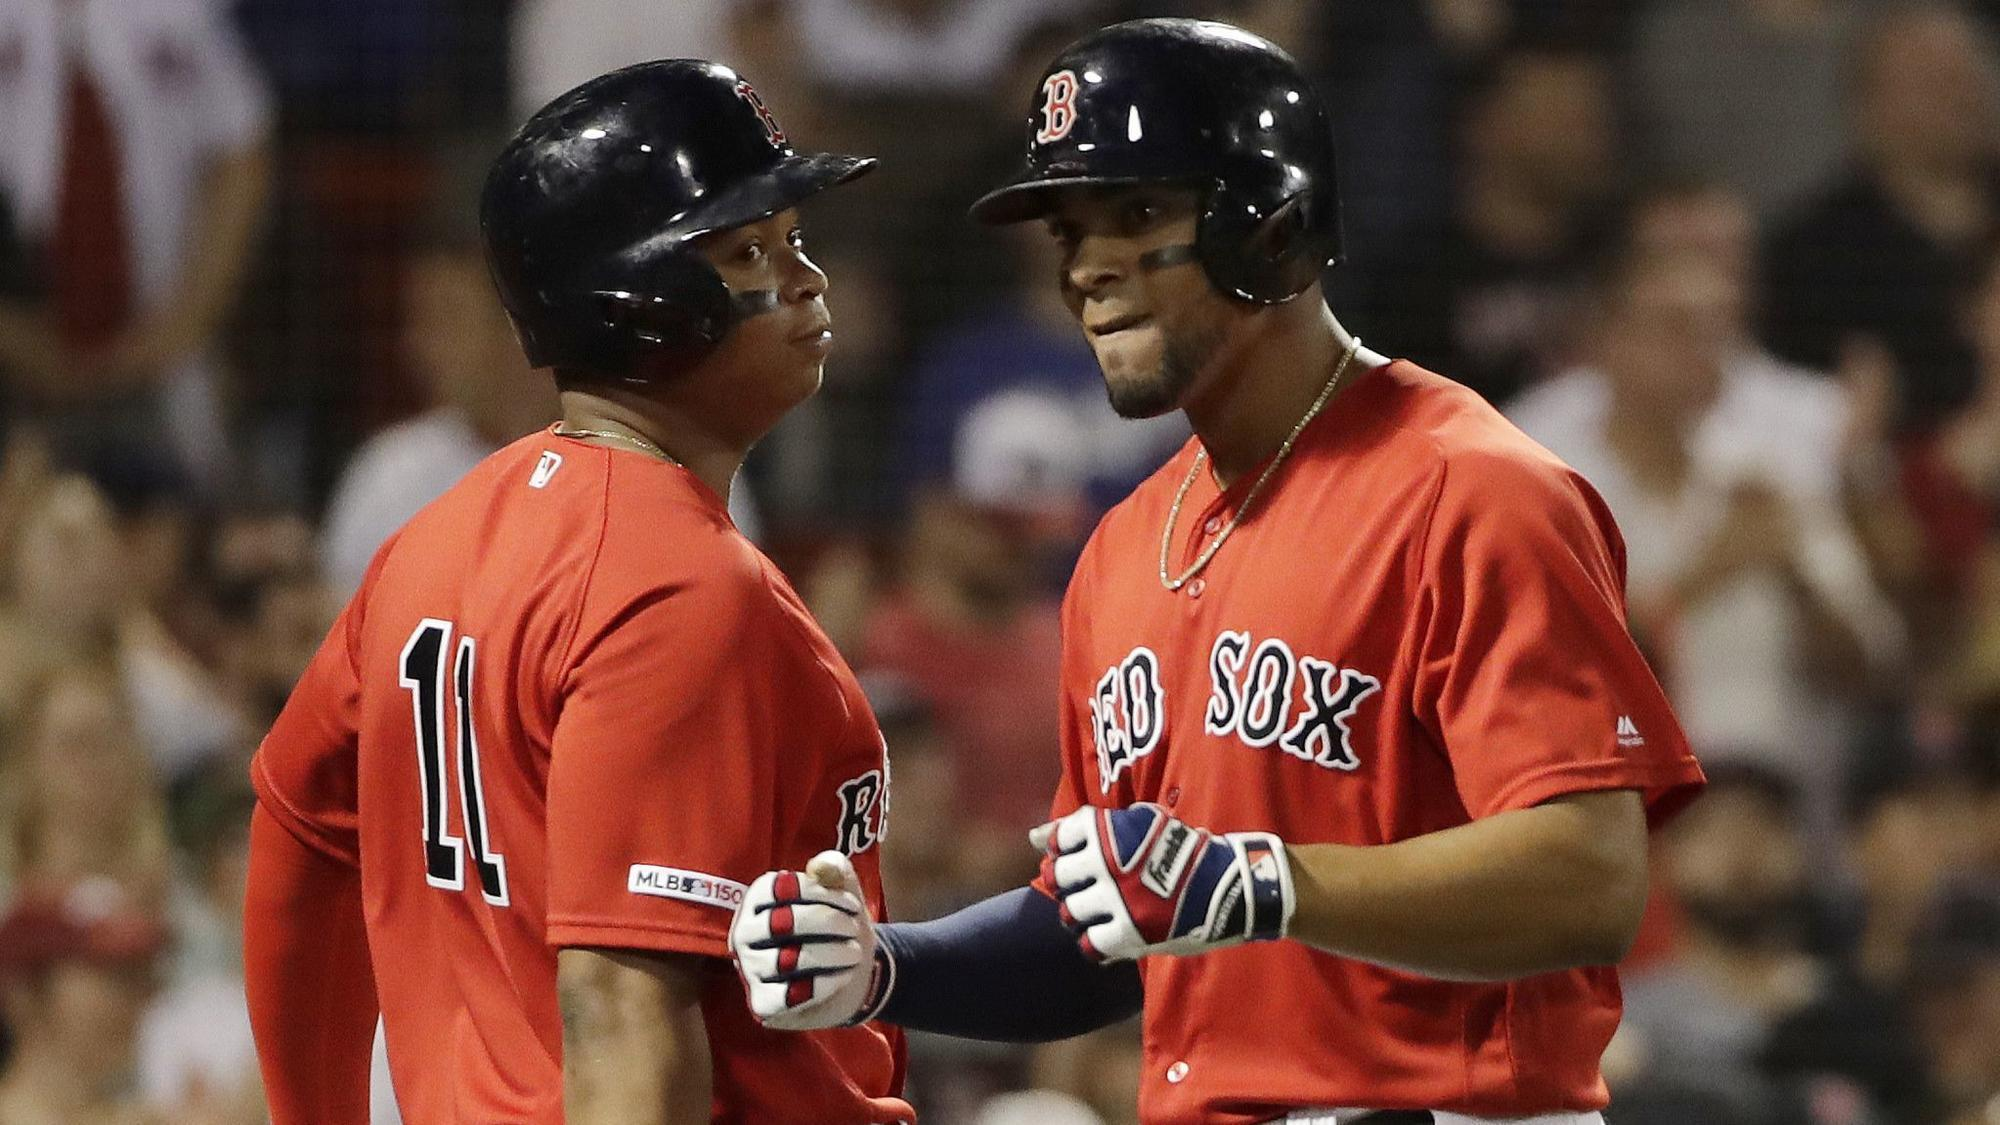 Defending World Series champion Red Sox still feared despite early stumble